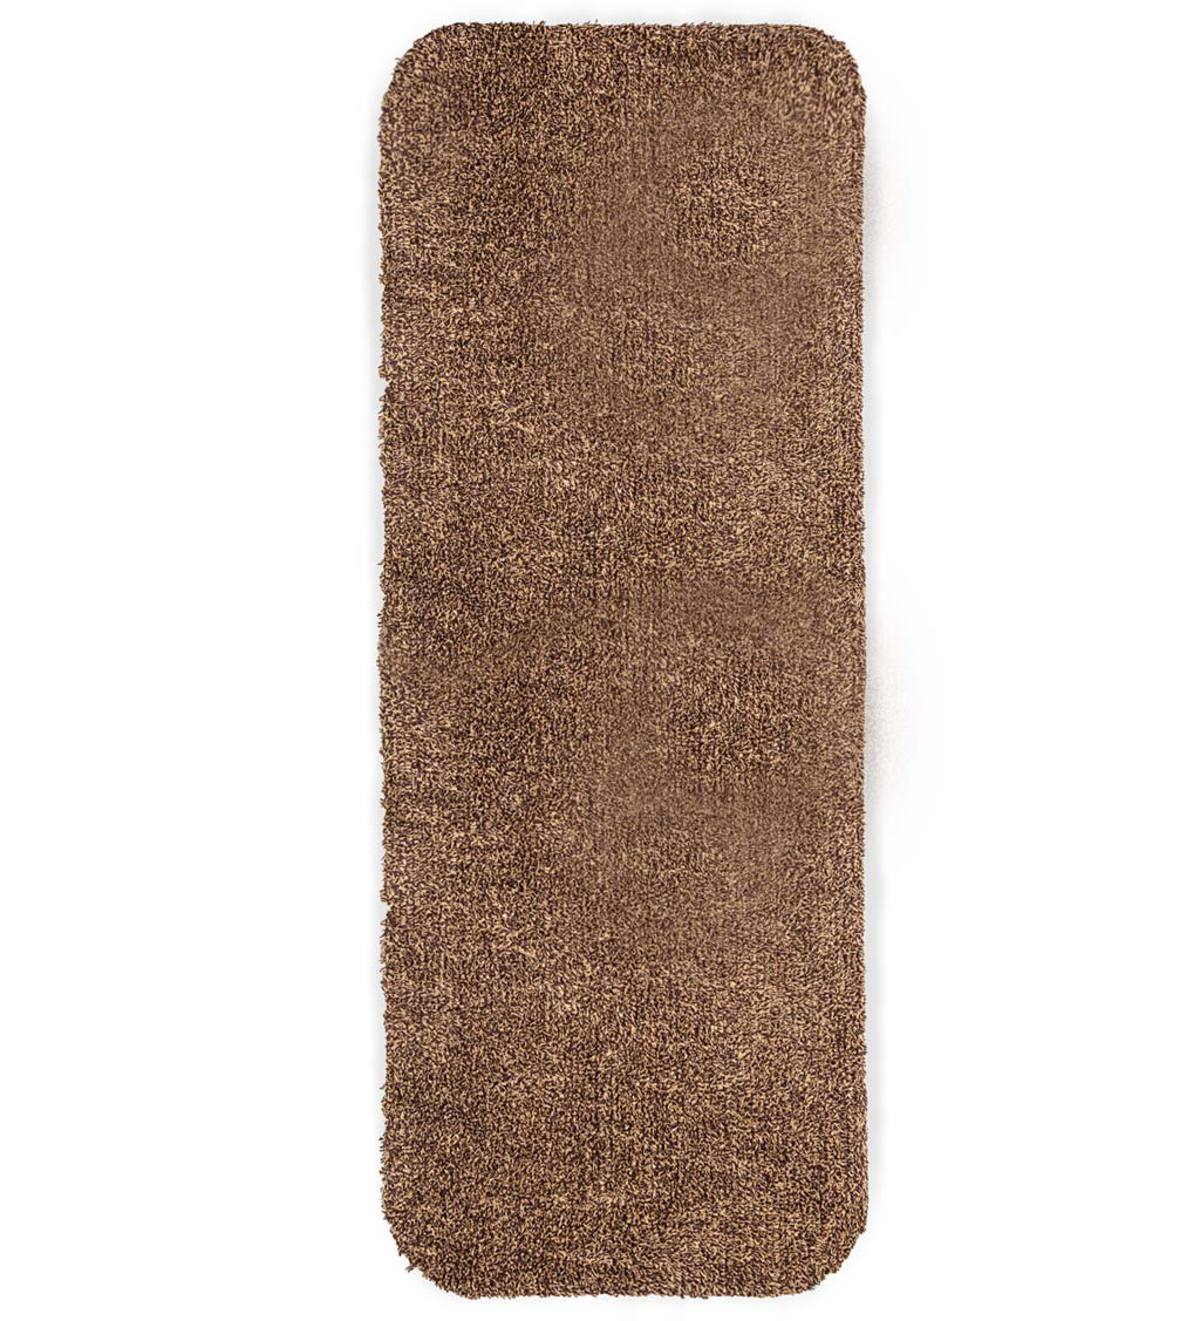 Microfiber Mud Rug With Non Skid Backing 29 X 58 Runner Plowhearth